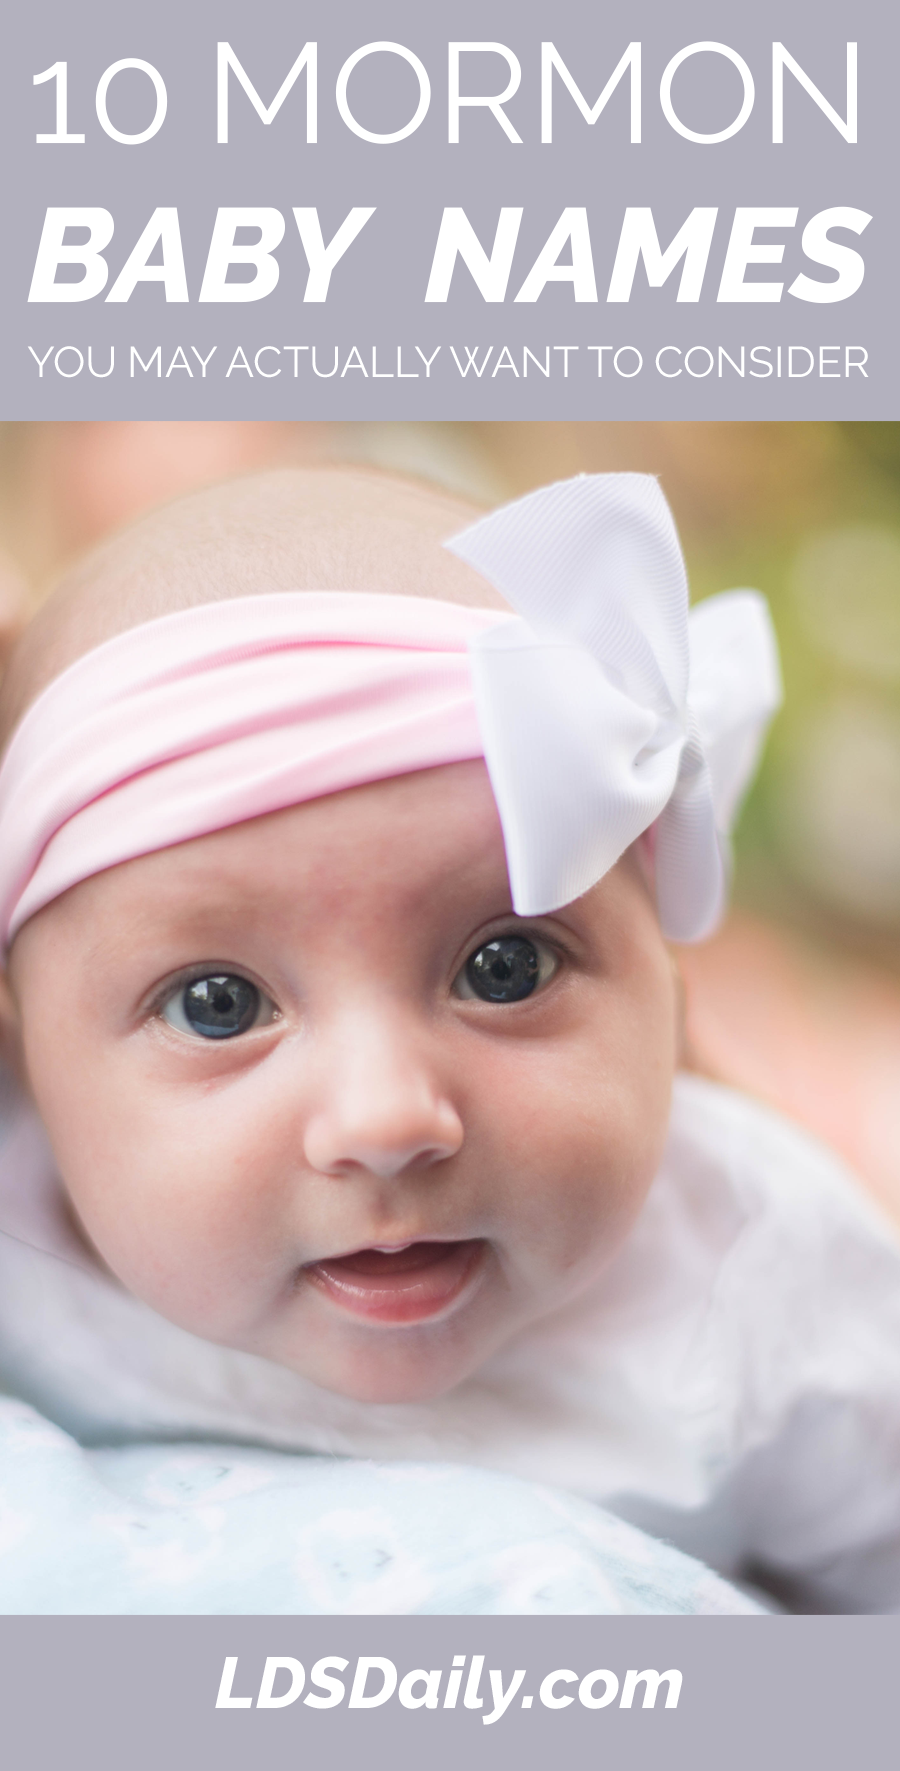 10 Mormon Baby Names You May Actually Want To Consider Lds Daily